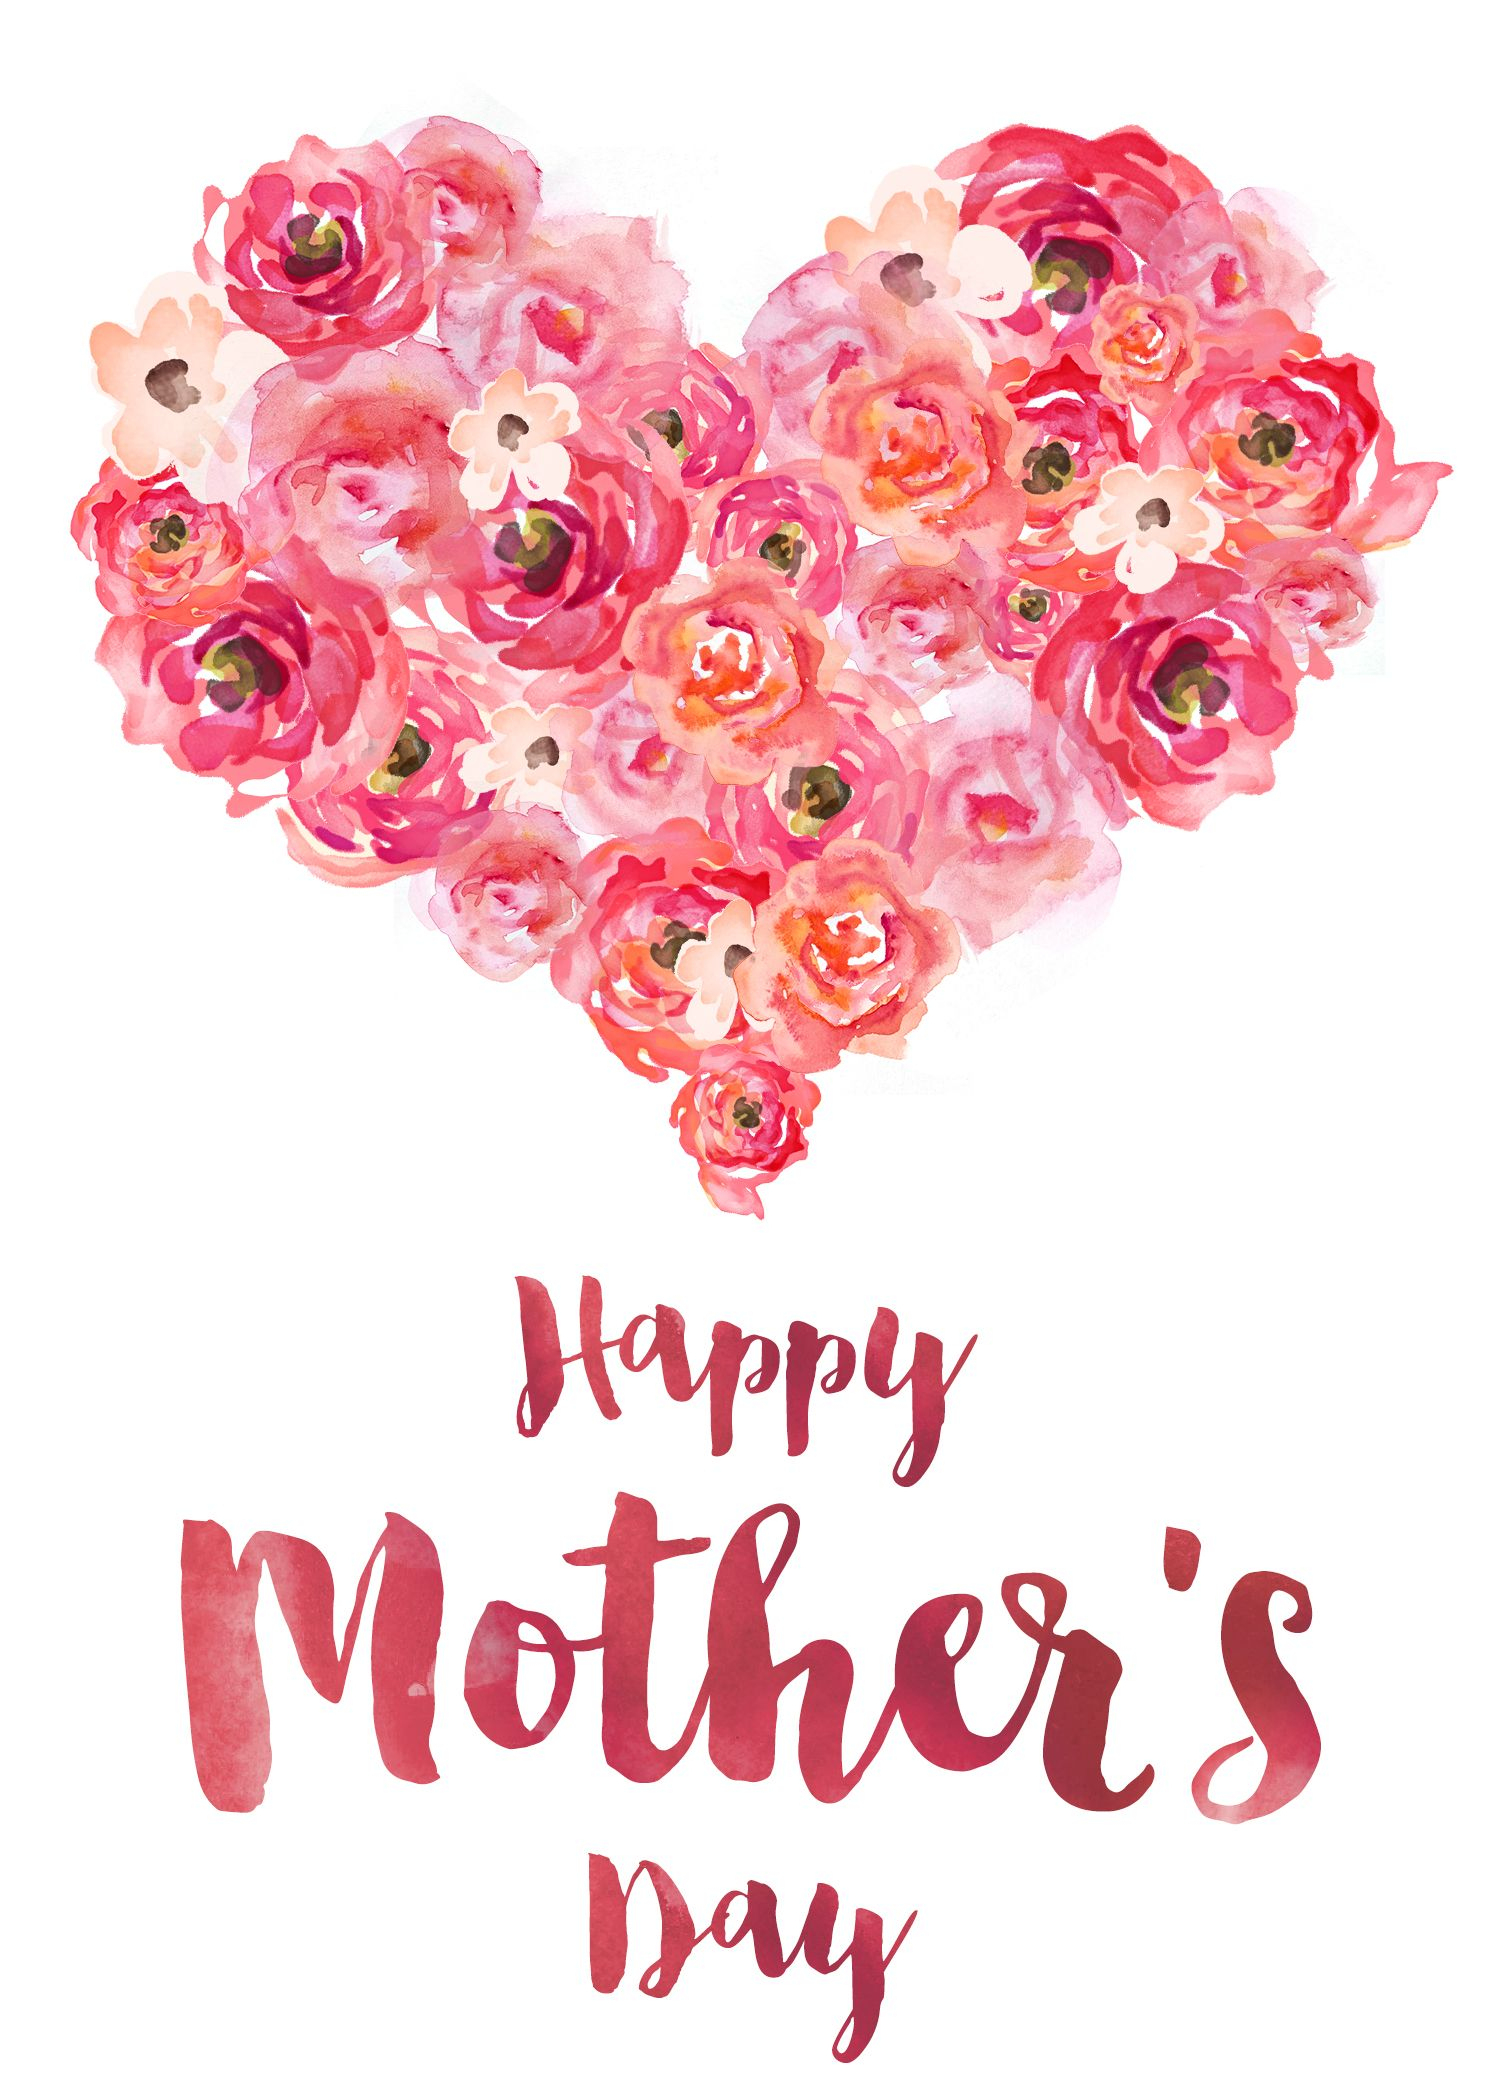 Customized Banner   Share Your Heart   Mothers Day Images, Happy - Free Spanish Mothers Day Cards Printable